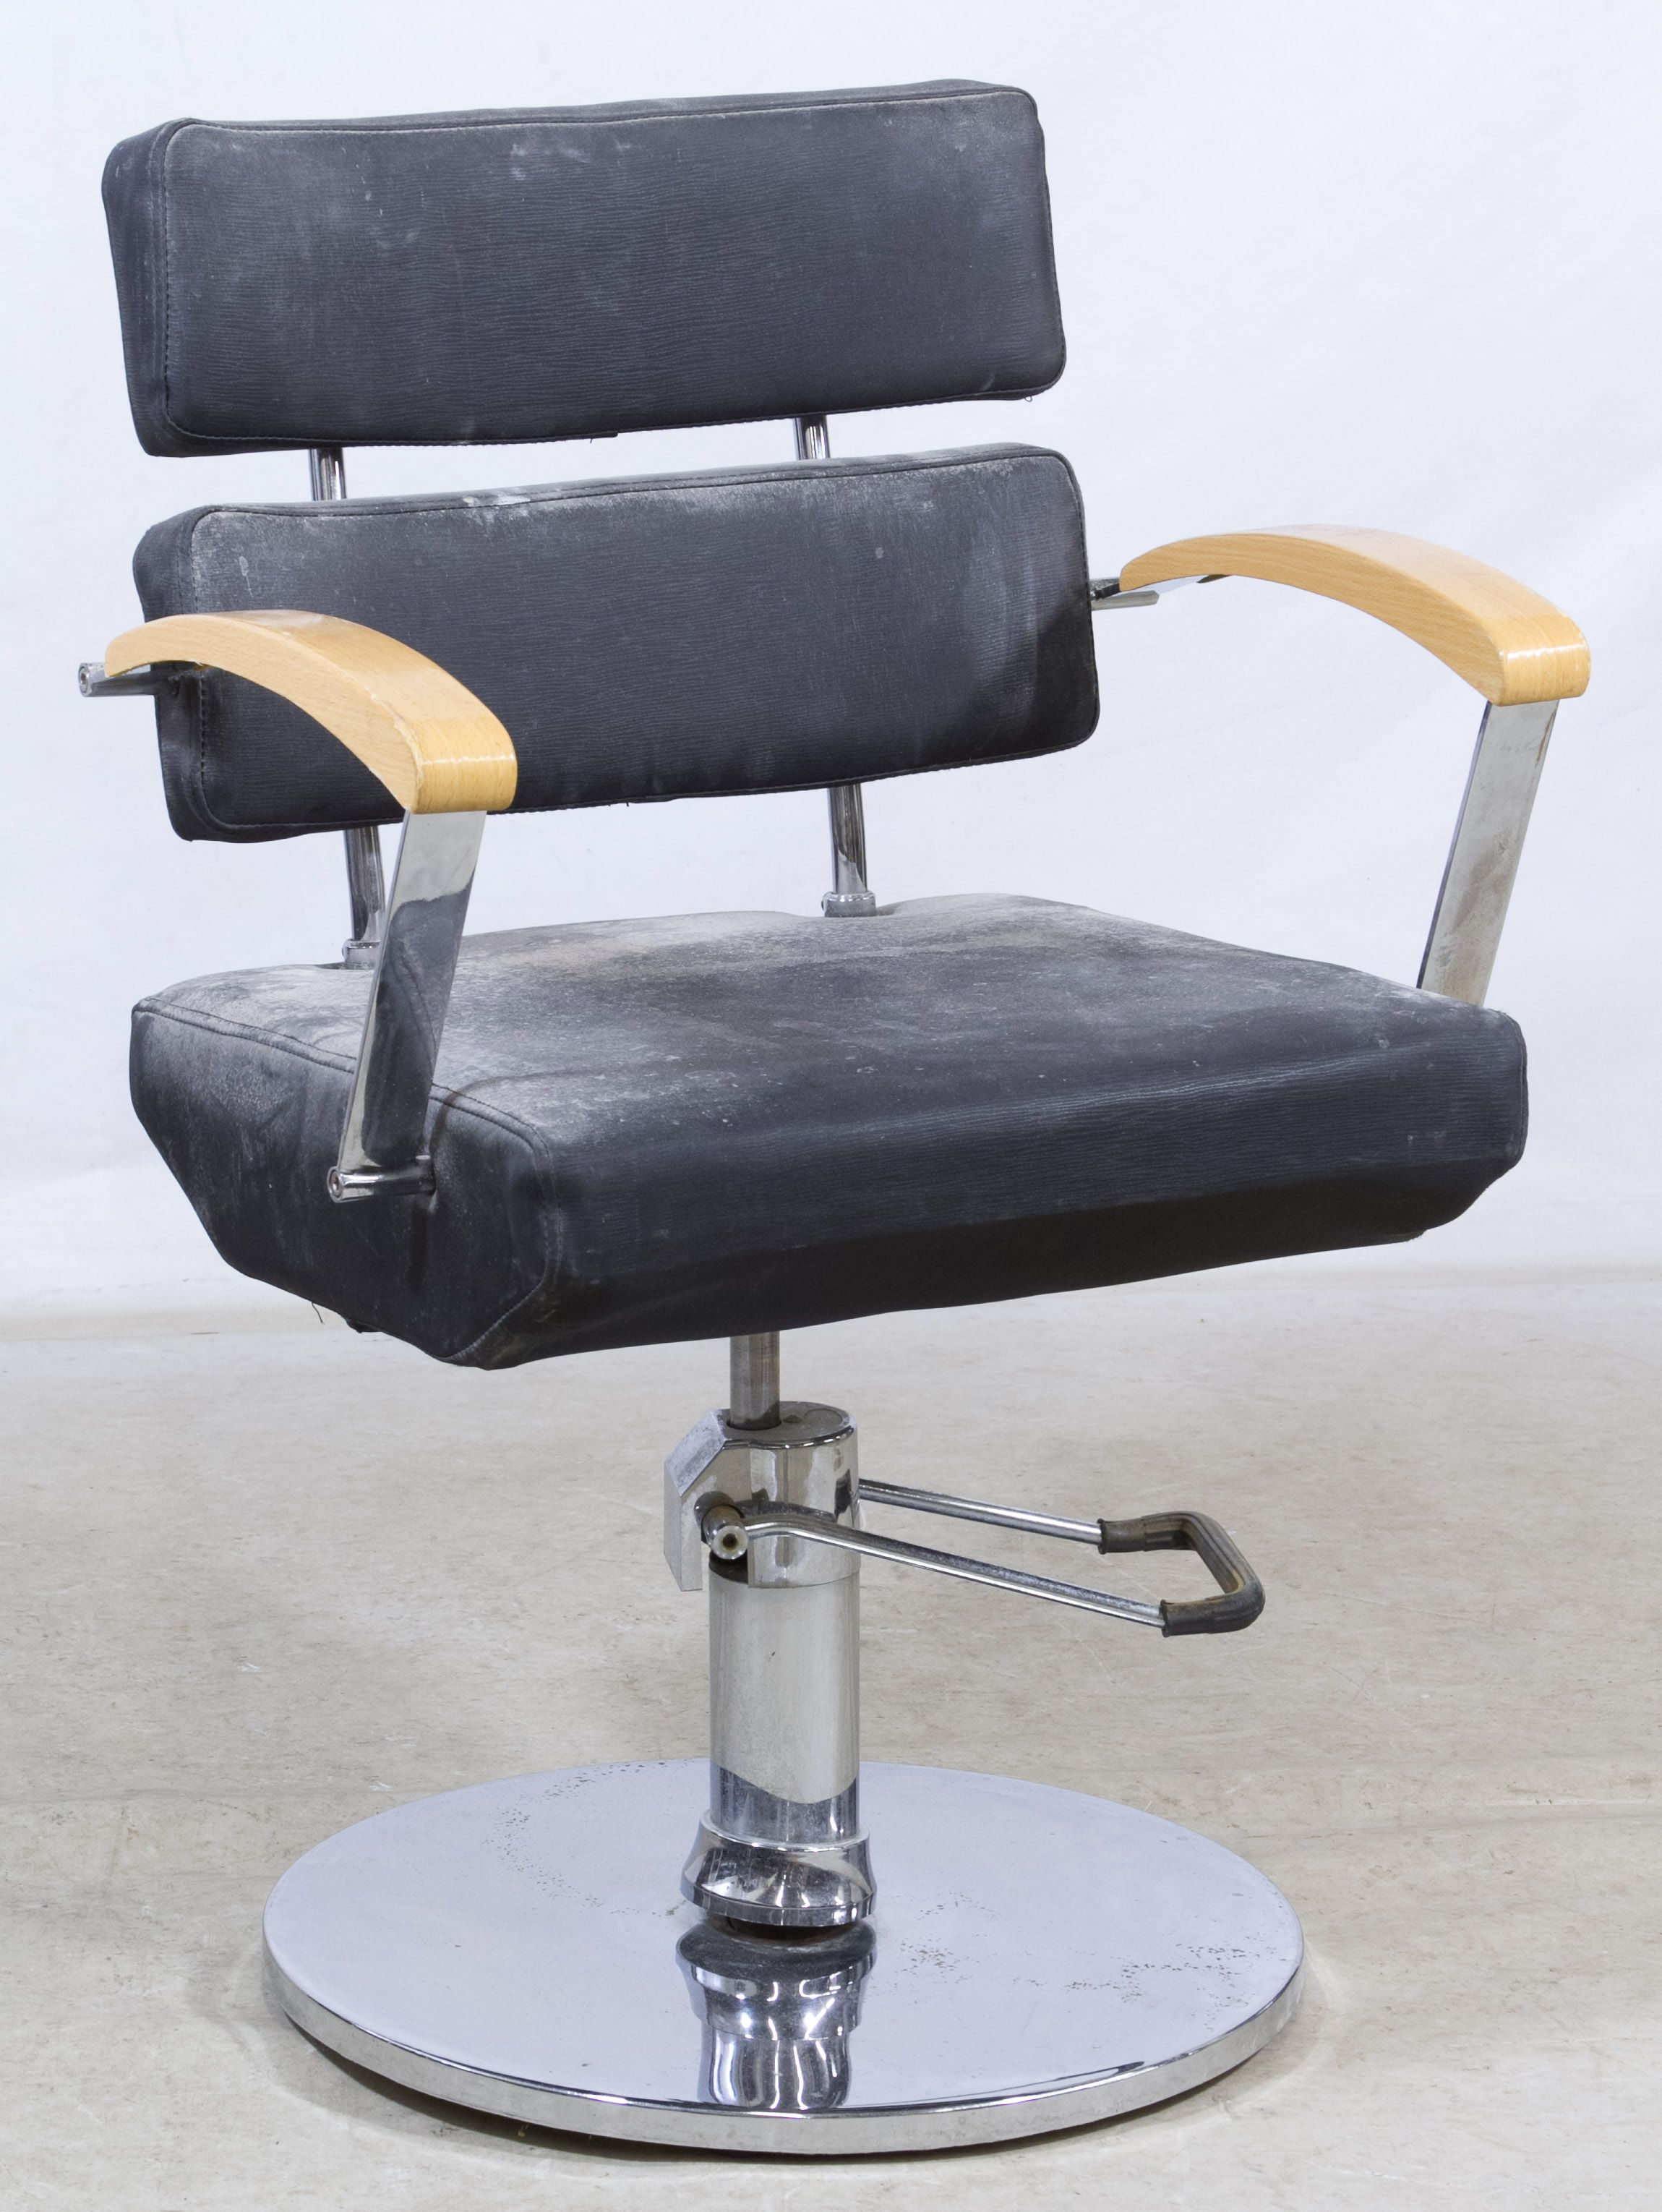 Lot 694: Hydraulic Salon Chair; Faux Leather And Chrome Swivel Chair On  Adjustable Pedestal Base